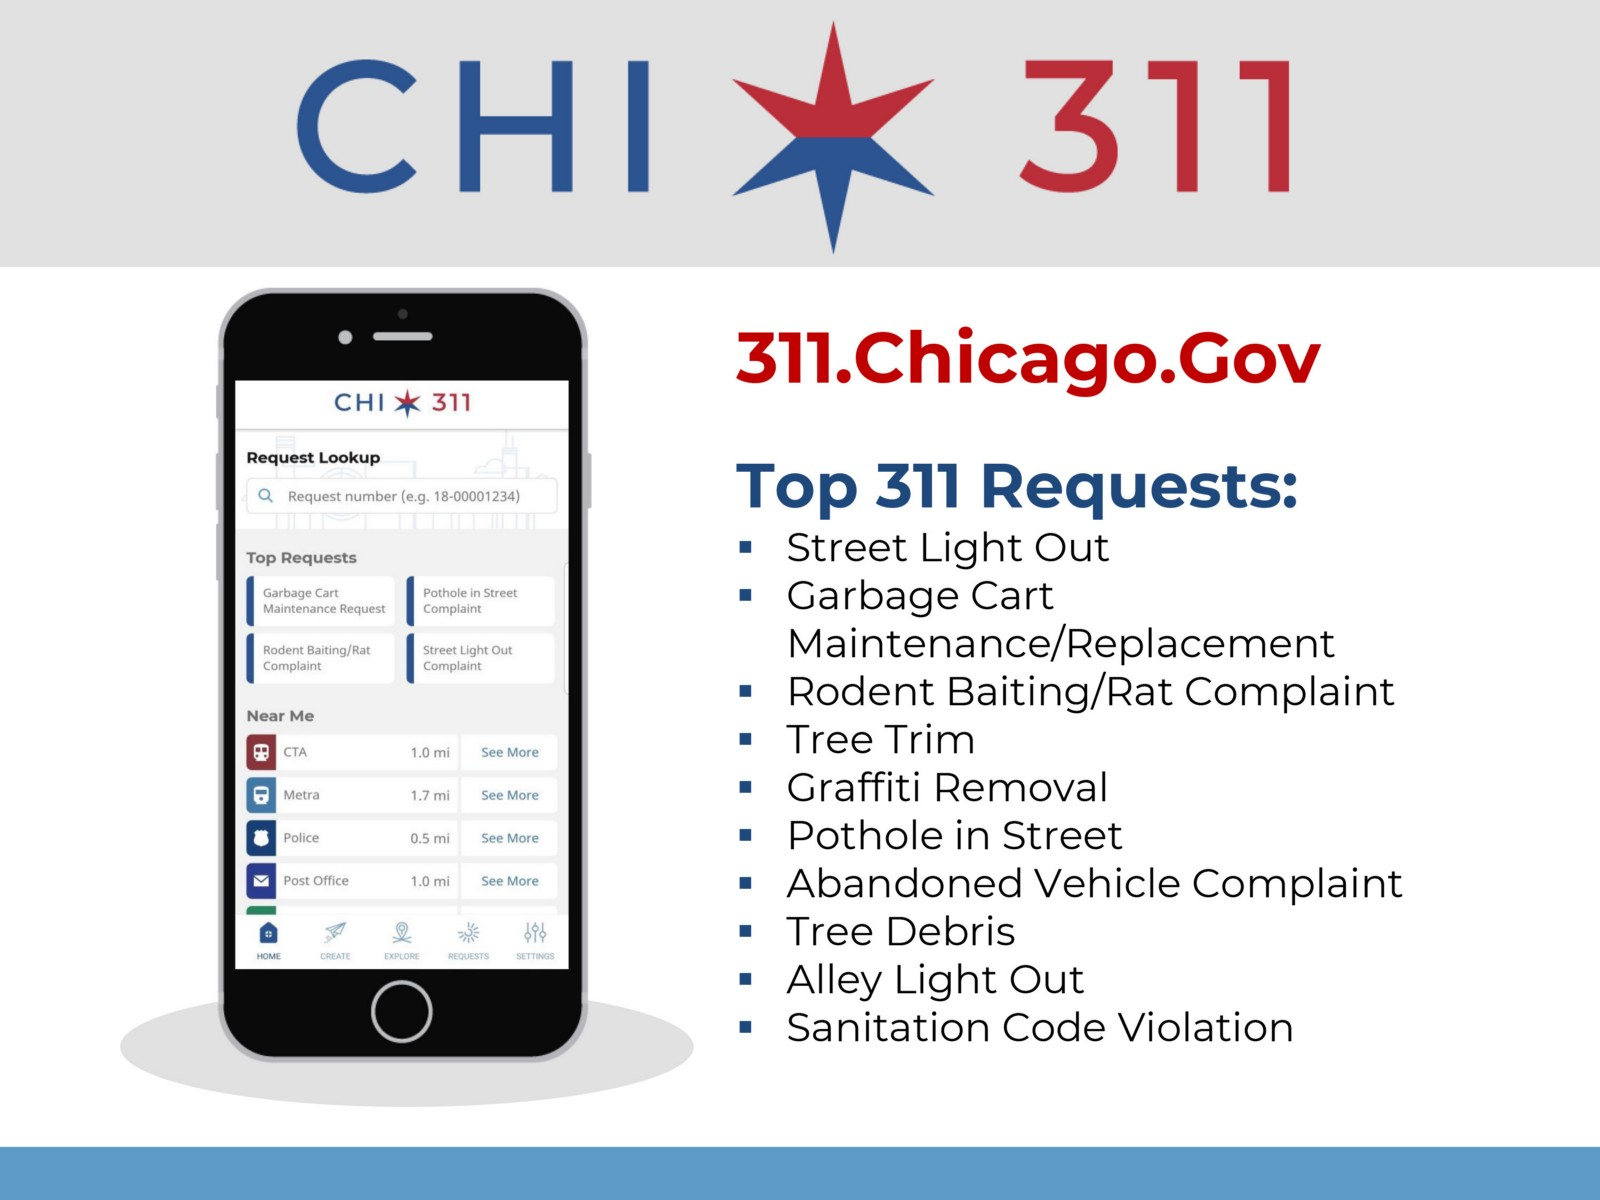 Chicago 311 Top Requests